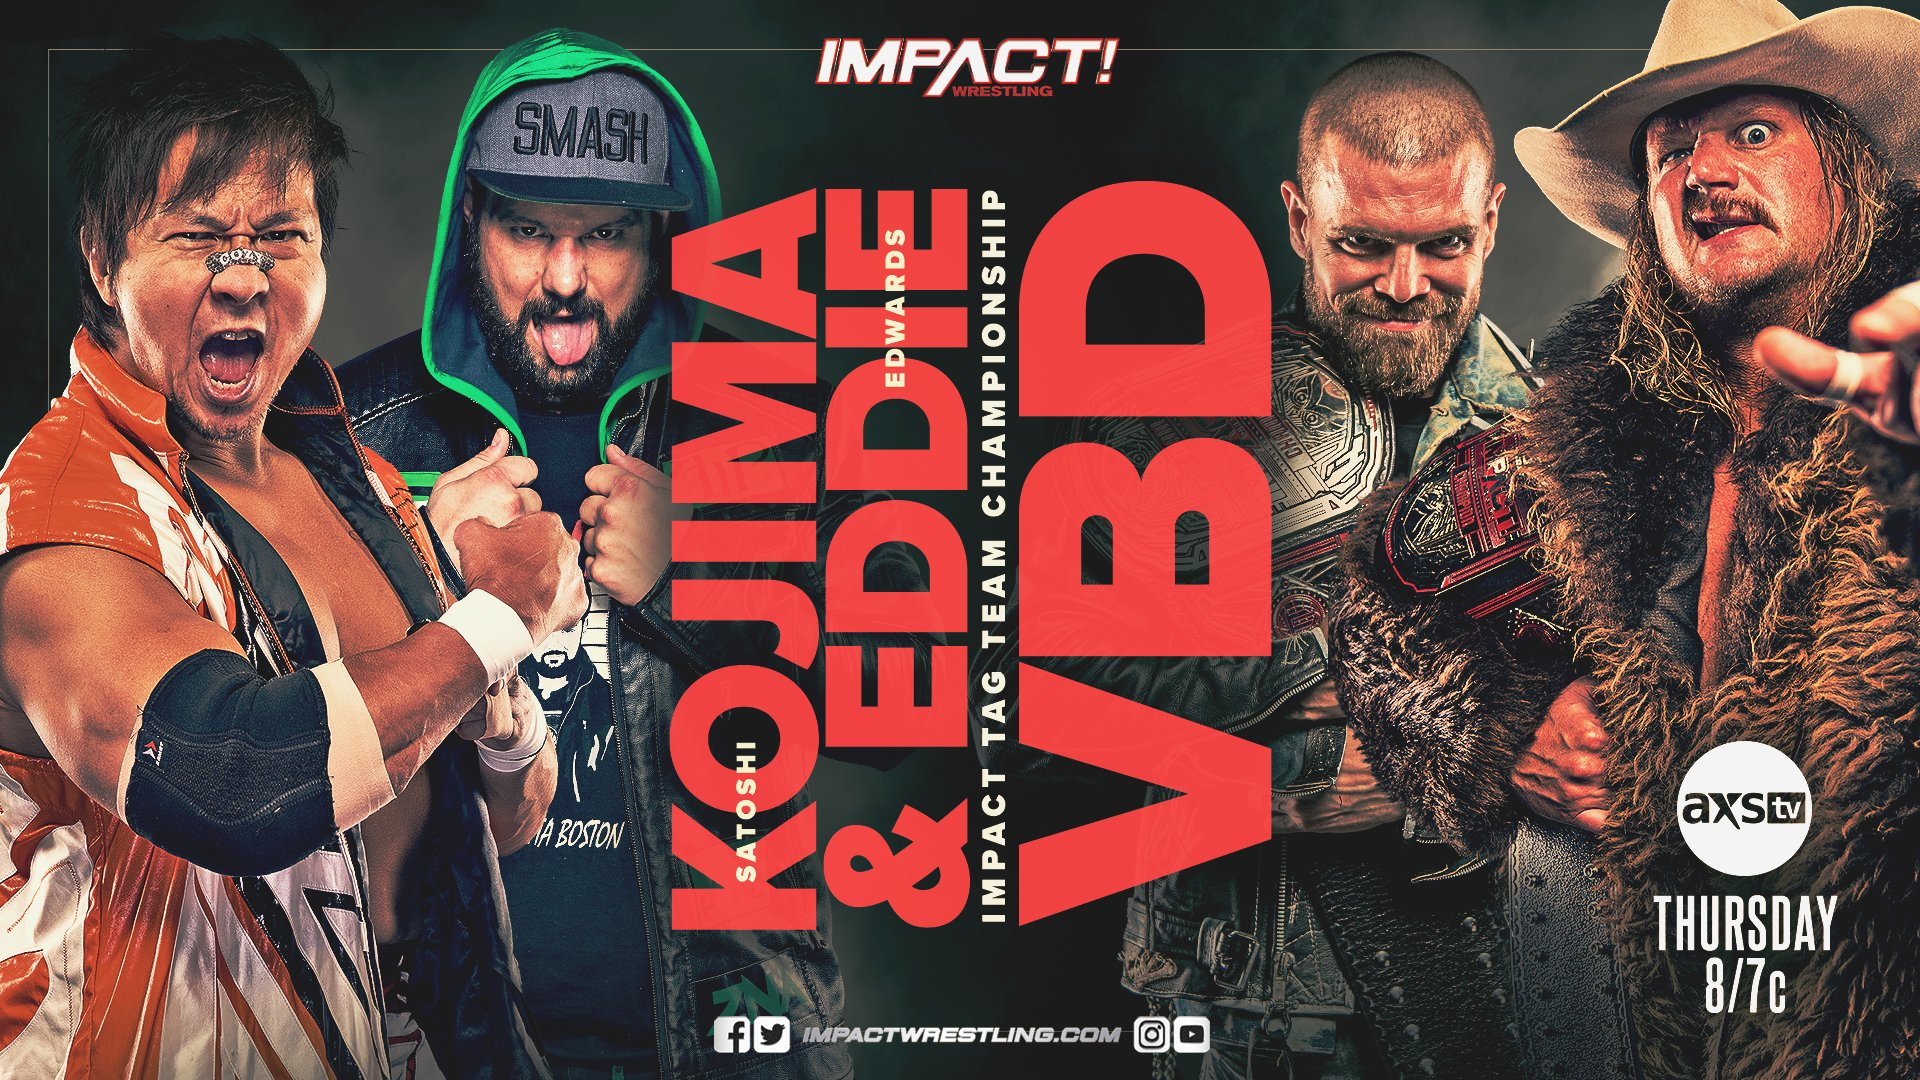 Impact Wrestling Preview (6/24): Tag Team Title Match, Deonna Purrazzo Vs. Susan, More